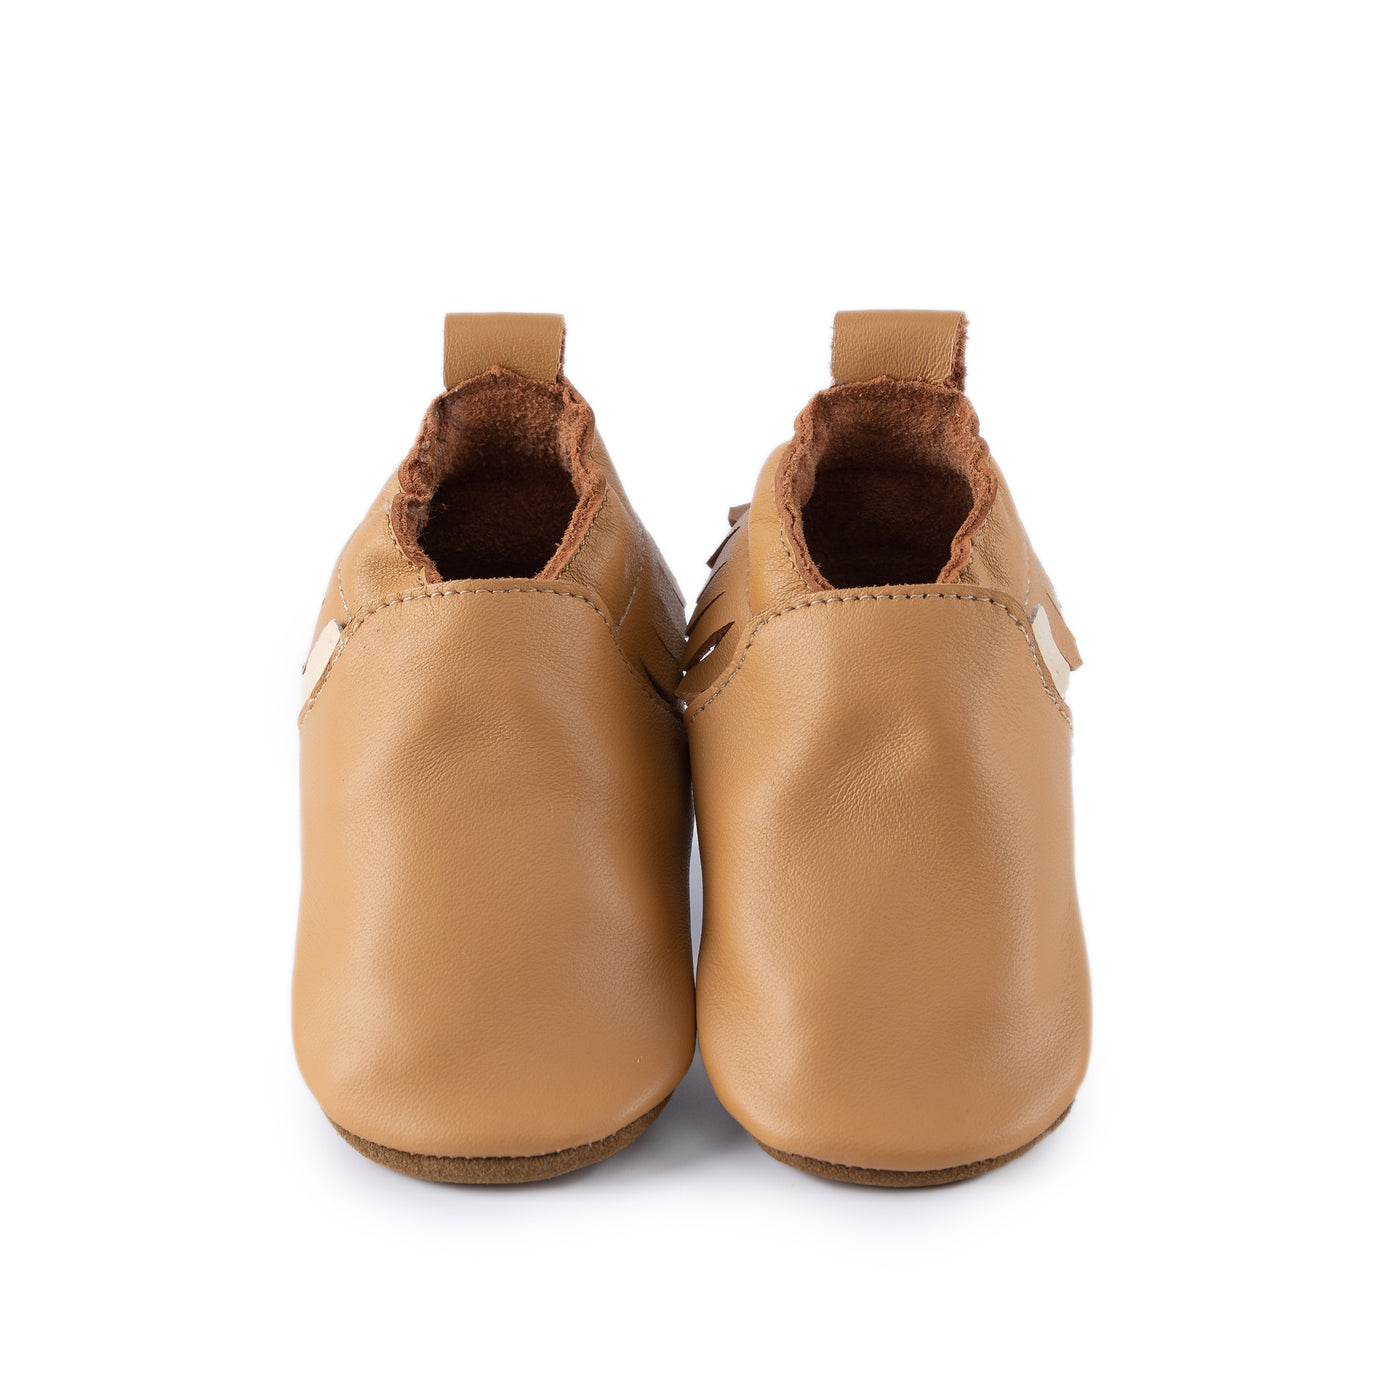 House of Little Jay | Bao Leather Shoes